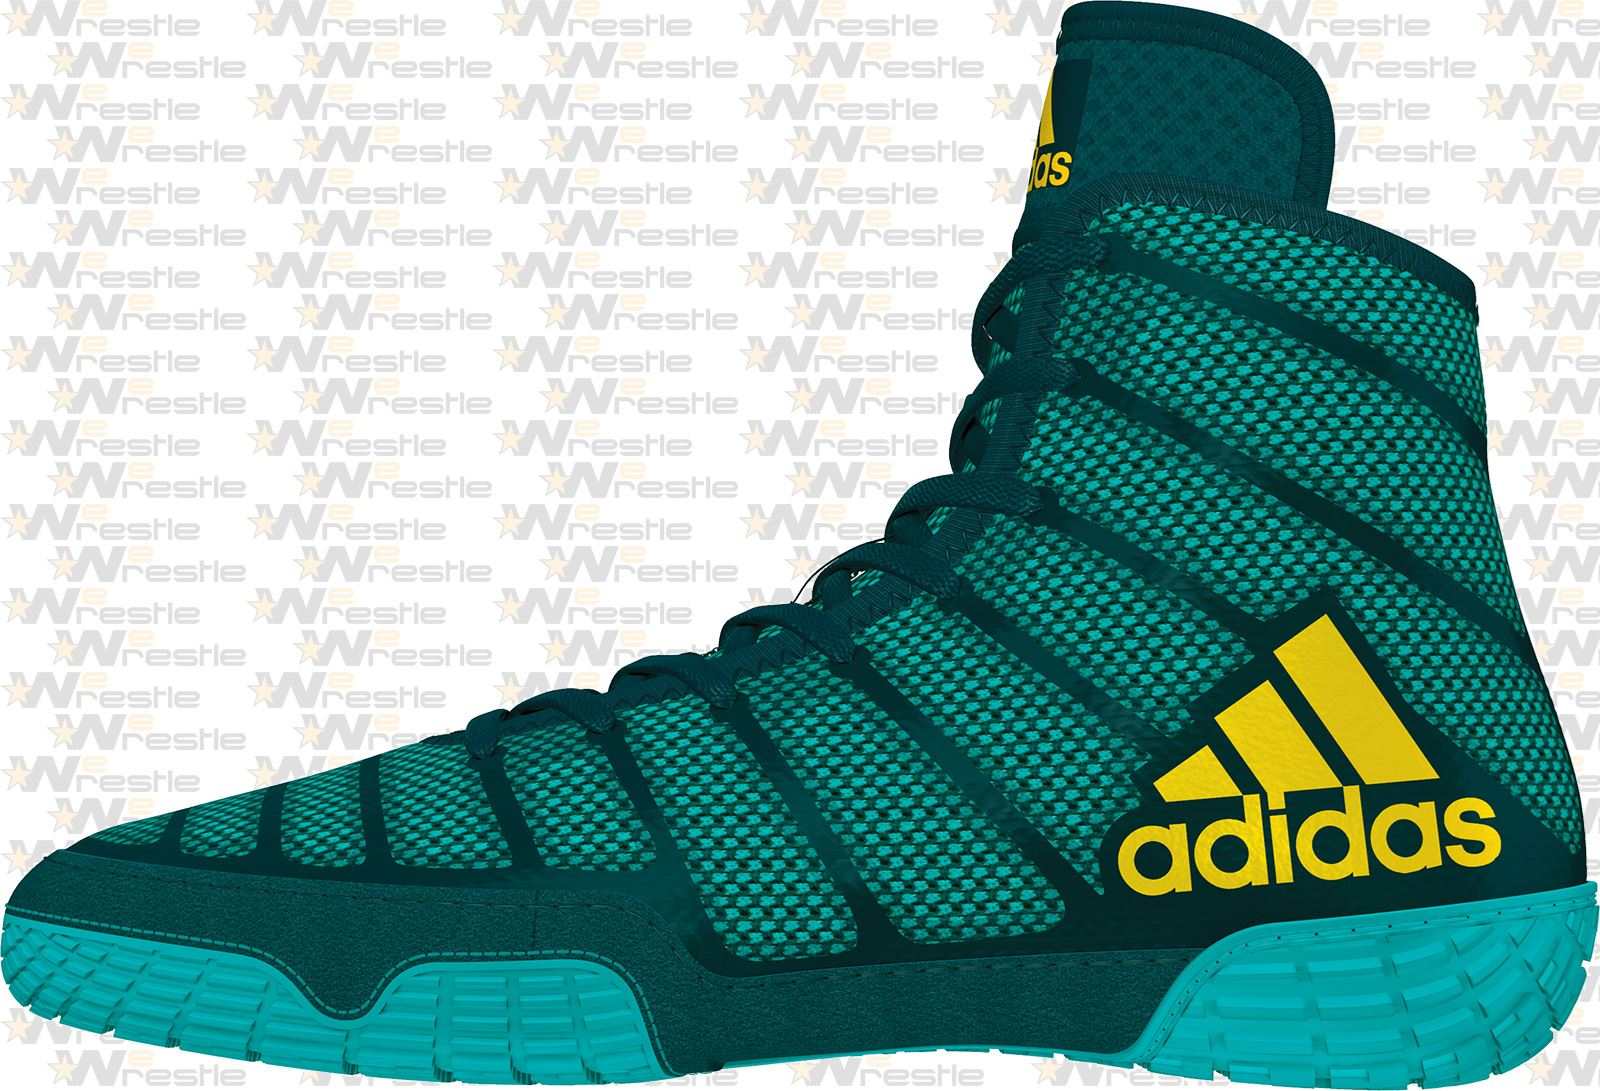 adidas Varner Wrestling Shoes Aqua